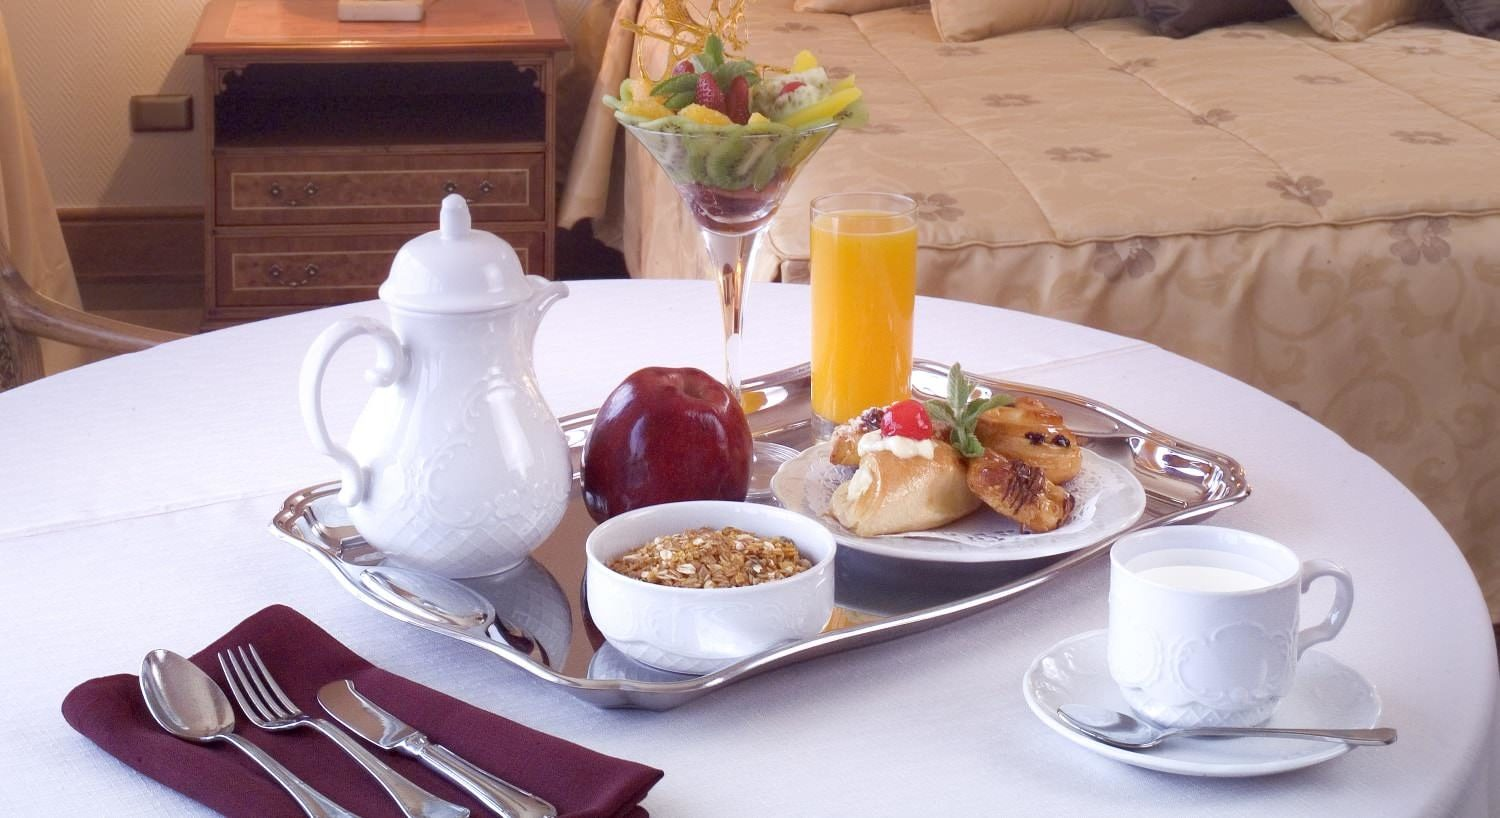 Silver tray with breakfast items on table with white tablecloth